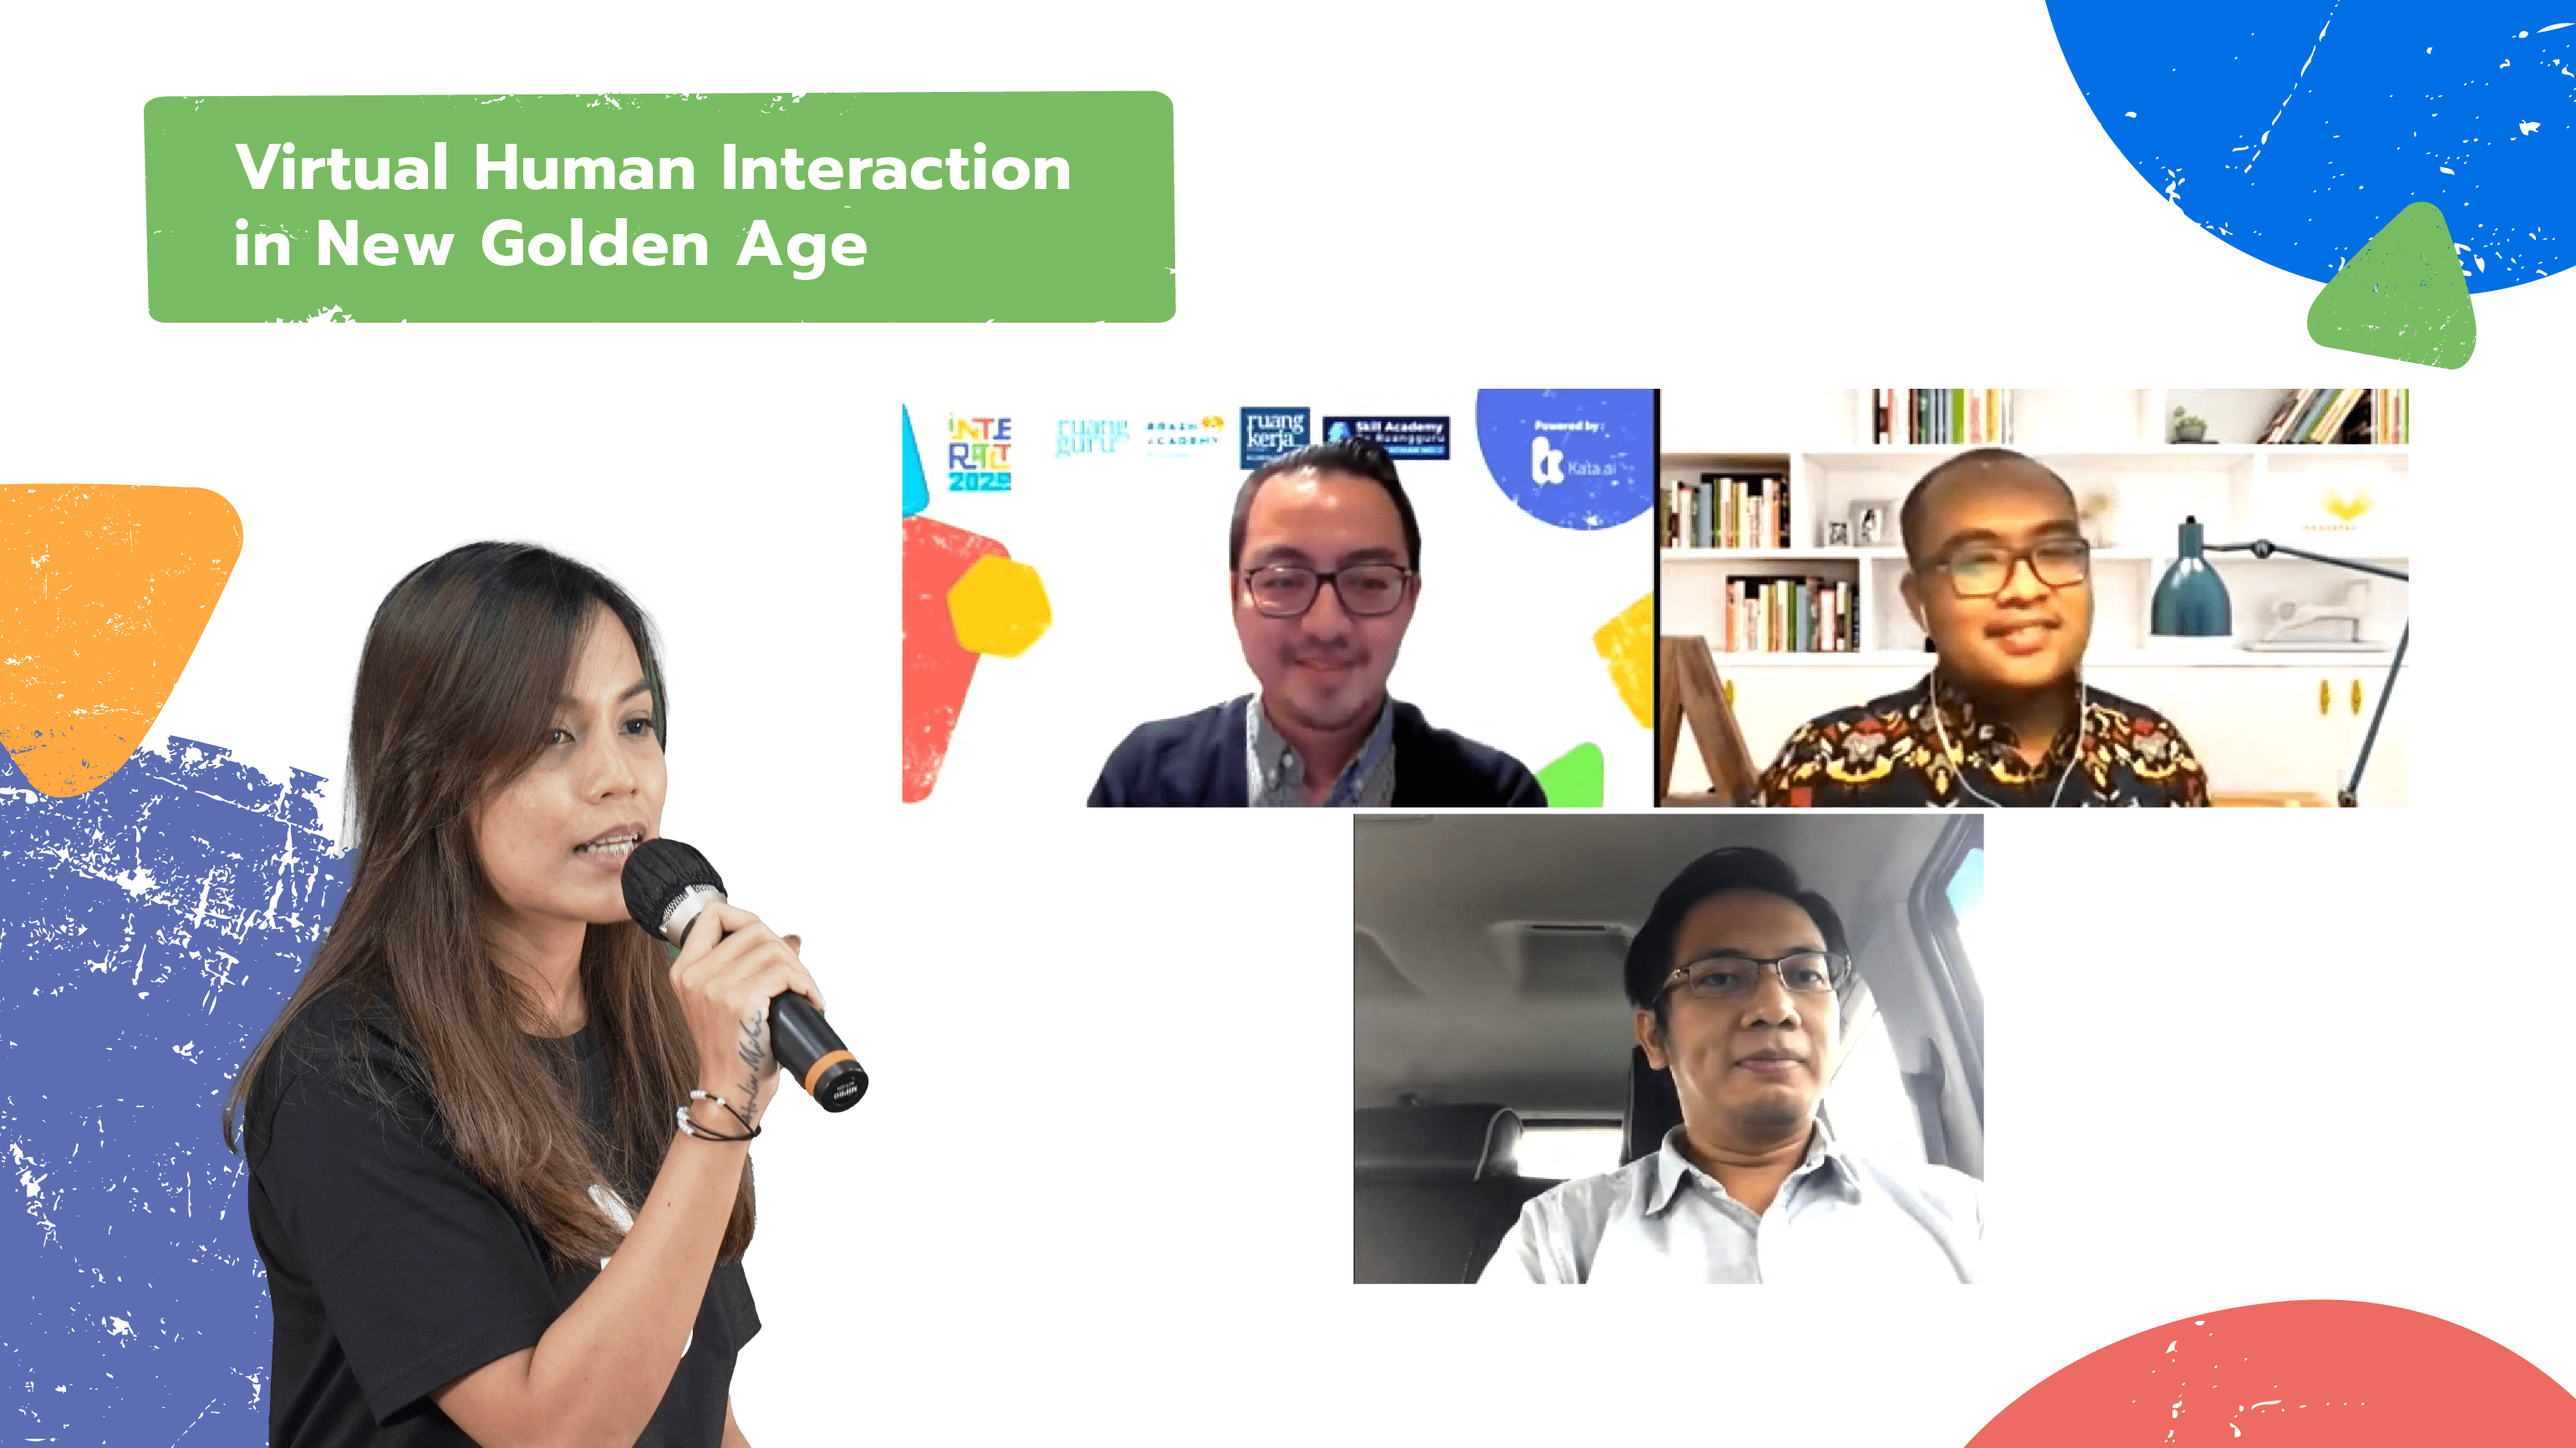 """INTERACT 2020's third panel session discussed how businesses in the healthcare and education sector can capitalize on the current """"golden age"""" of virtual human interactions with Ruangguru VP of Business and Operation Ritchie Gunawan, Prixa Product Management Lead Rosi Setyo Nugroho, and Indonesian Research and Technology Minister special staffer Danang Rizki Ginanjar."""